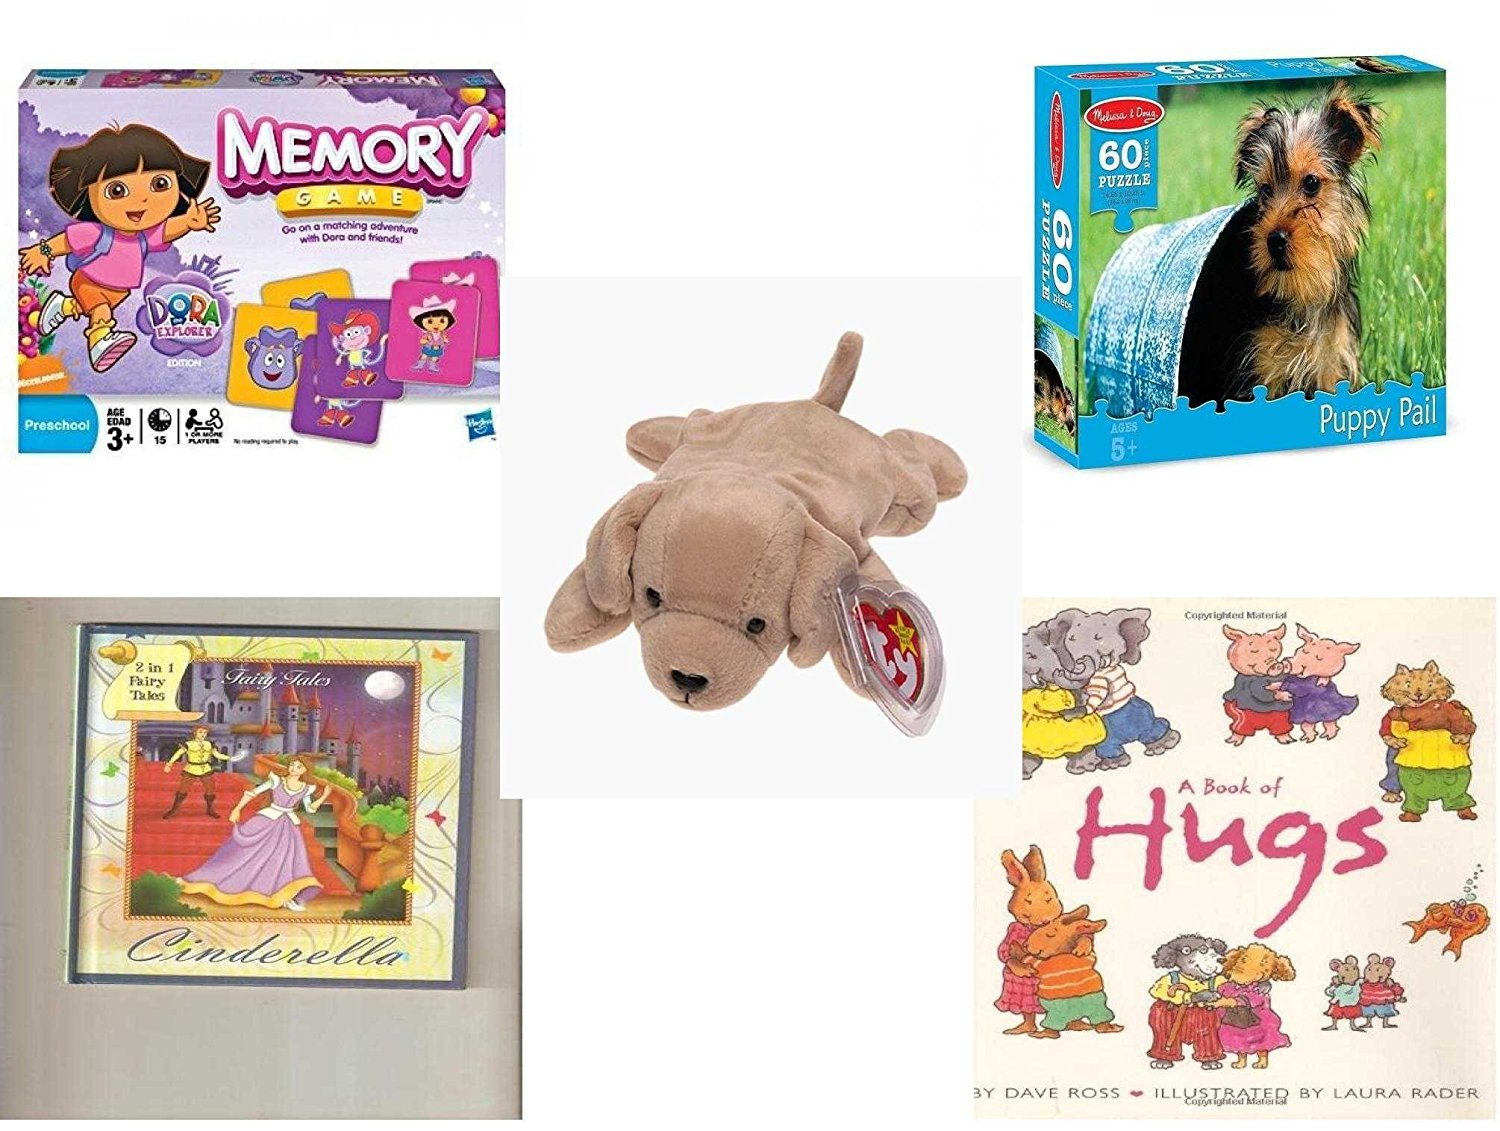 Children's Gift Bundle - Ages 3-5 [5 Piece] - Dora The Explorer Edition Memory Game - Melissa & Doug Terrier Puppy Pail 60 Piece Puzzle Toy - Ty Beanie Baby - Fetch the Golden Retriever Dog - 2 in 1